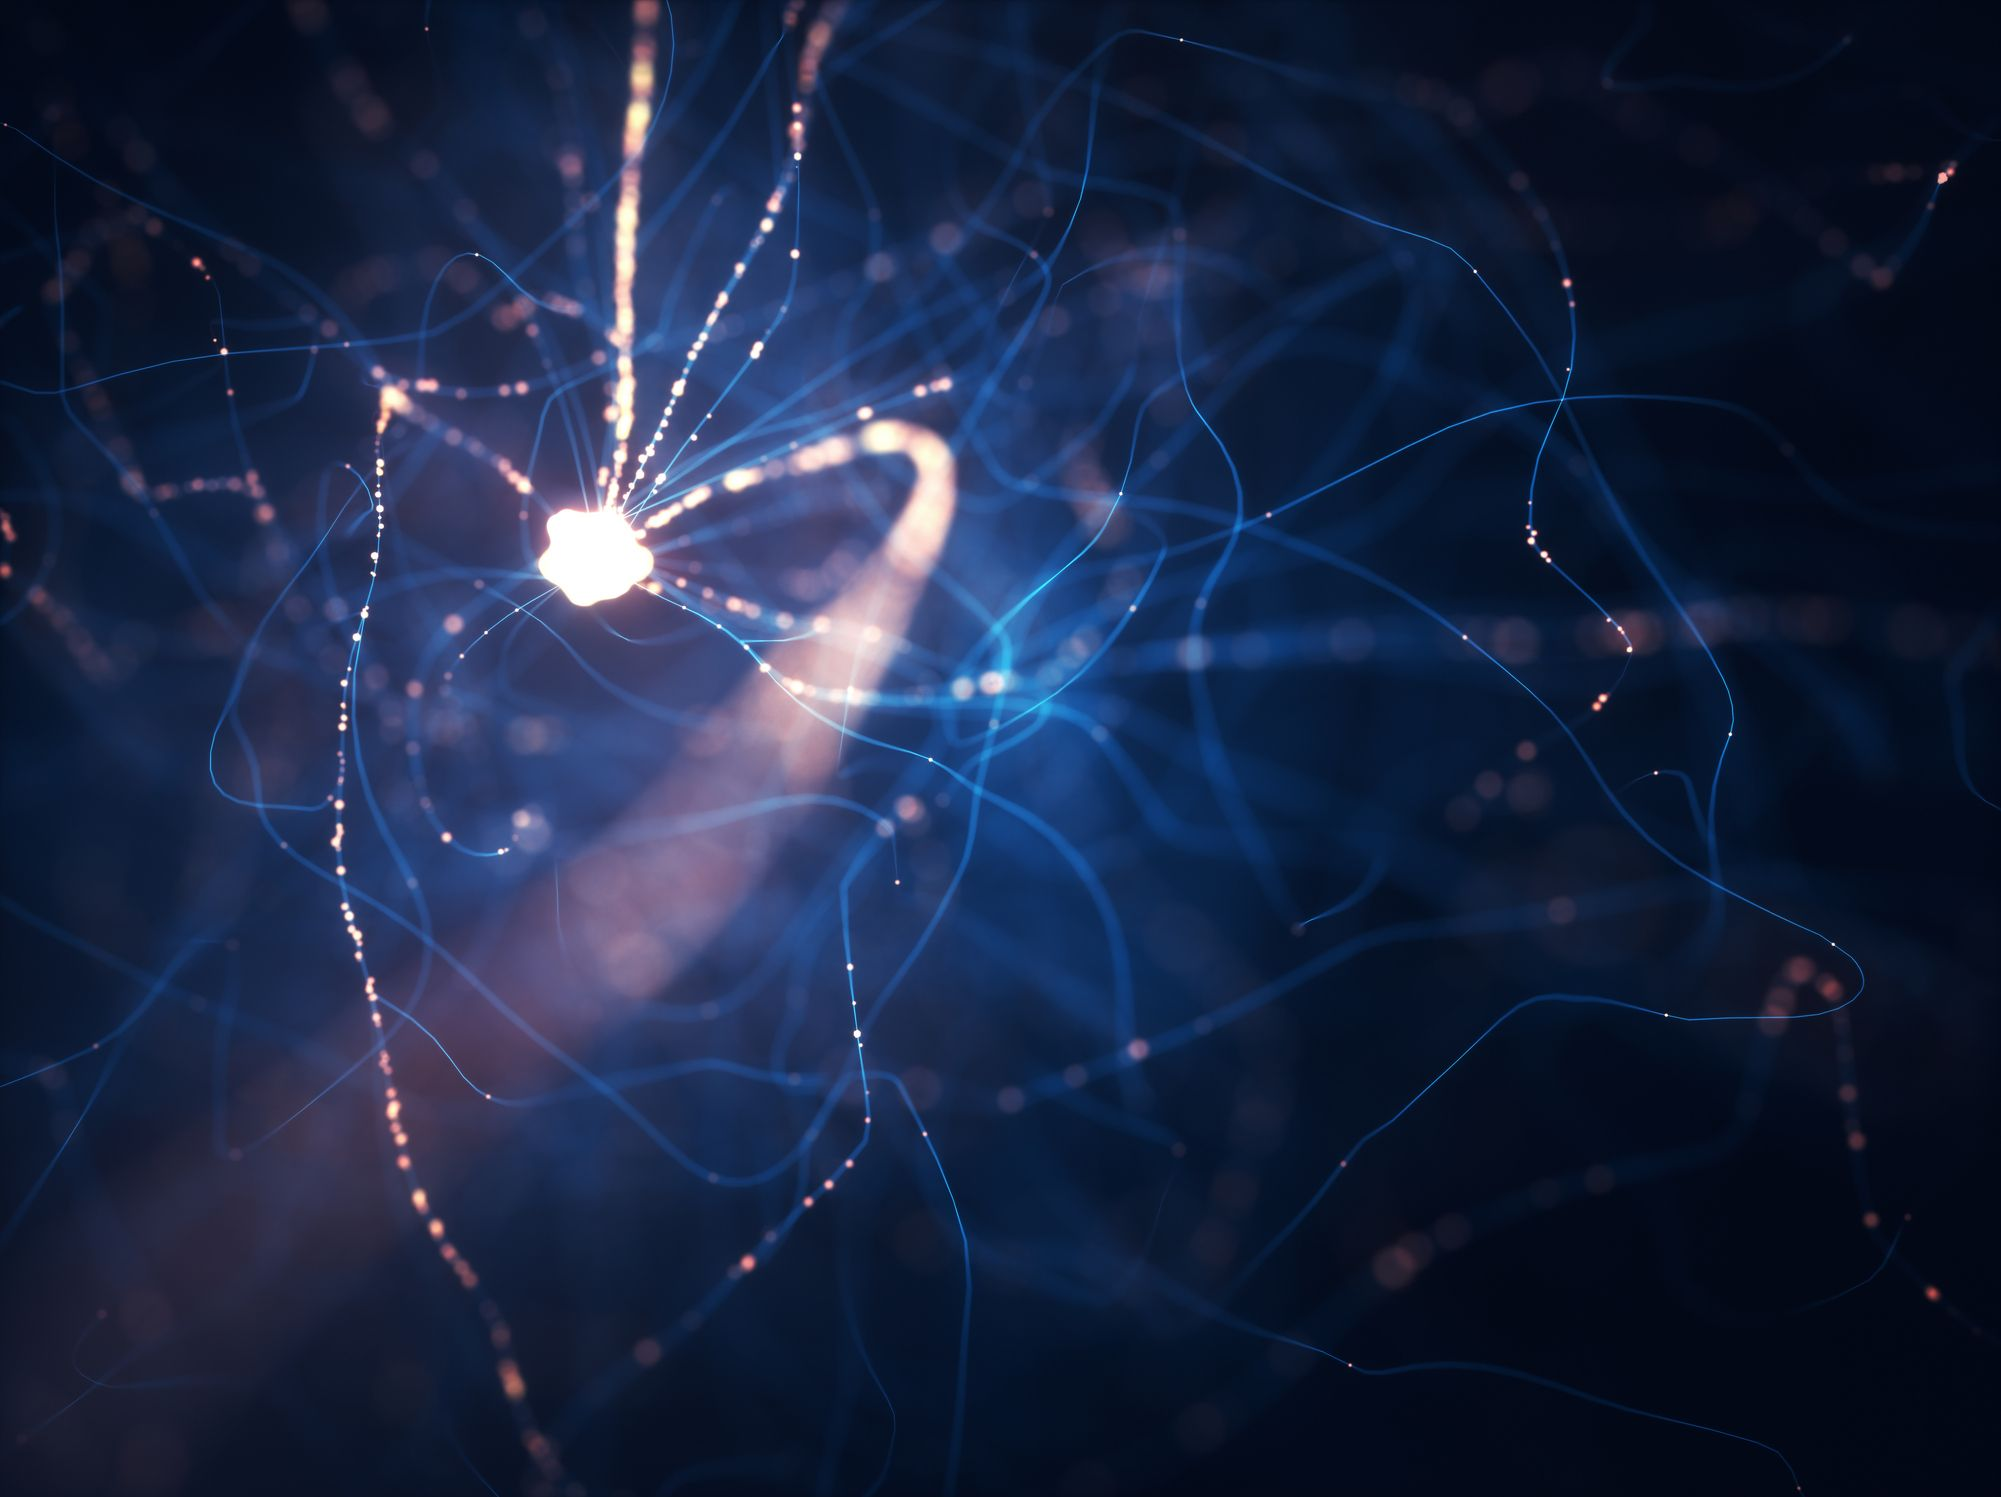 Scientists Figured Out How to Make Neural Networks 90 Percent Smaller—but Just as Smart